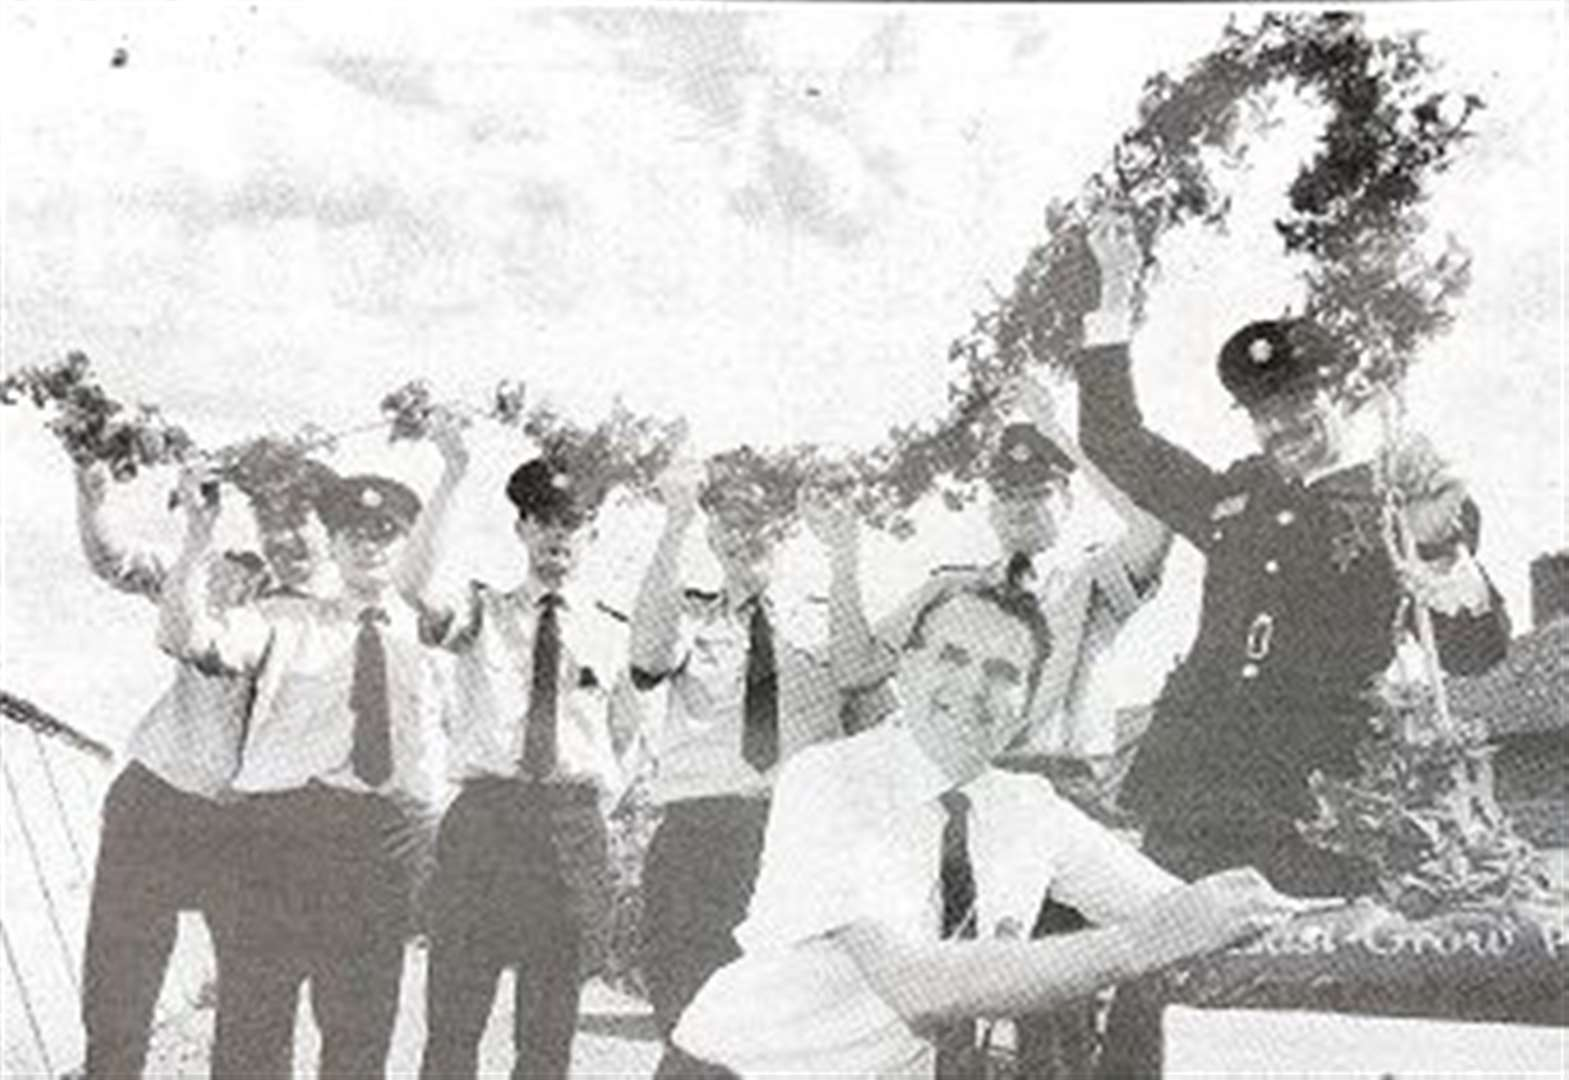 NOTALGIA: Spalding firemen help Bernard measure the tallest ever petunia 25 years ago